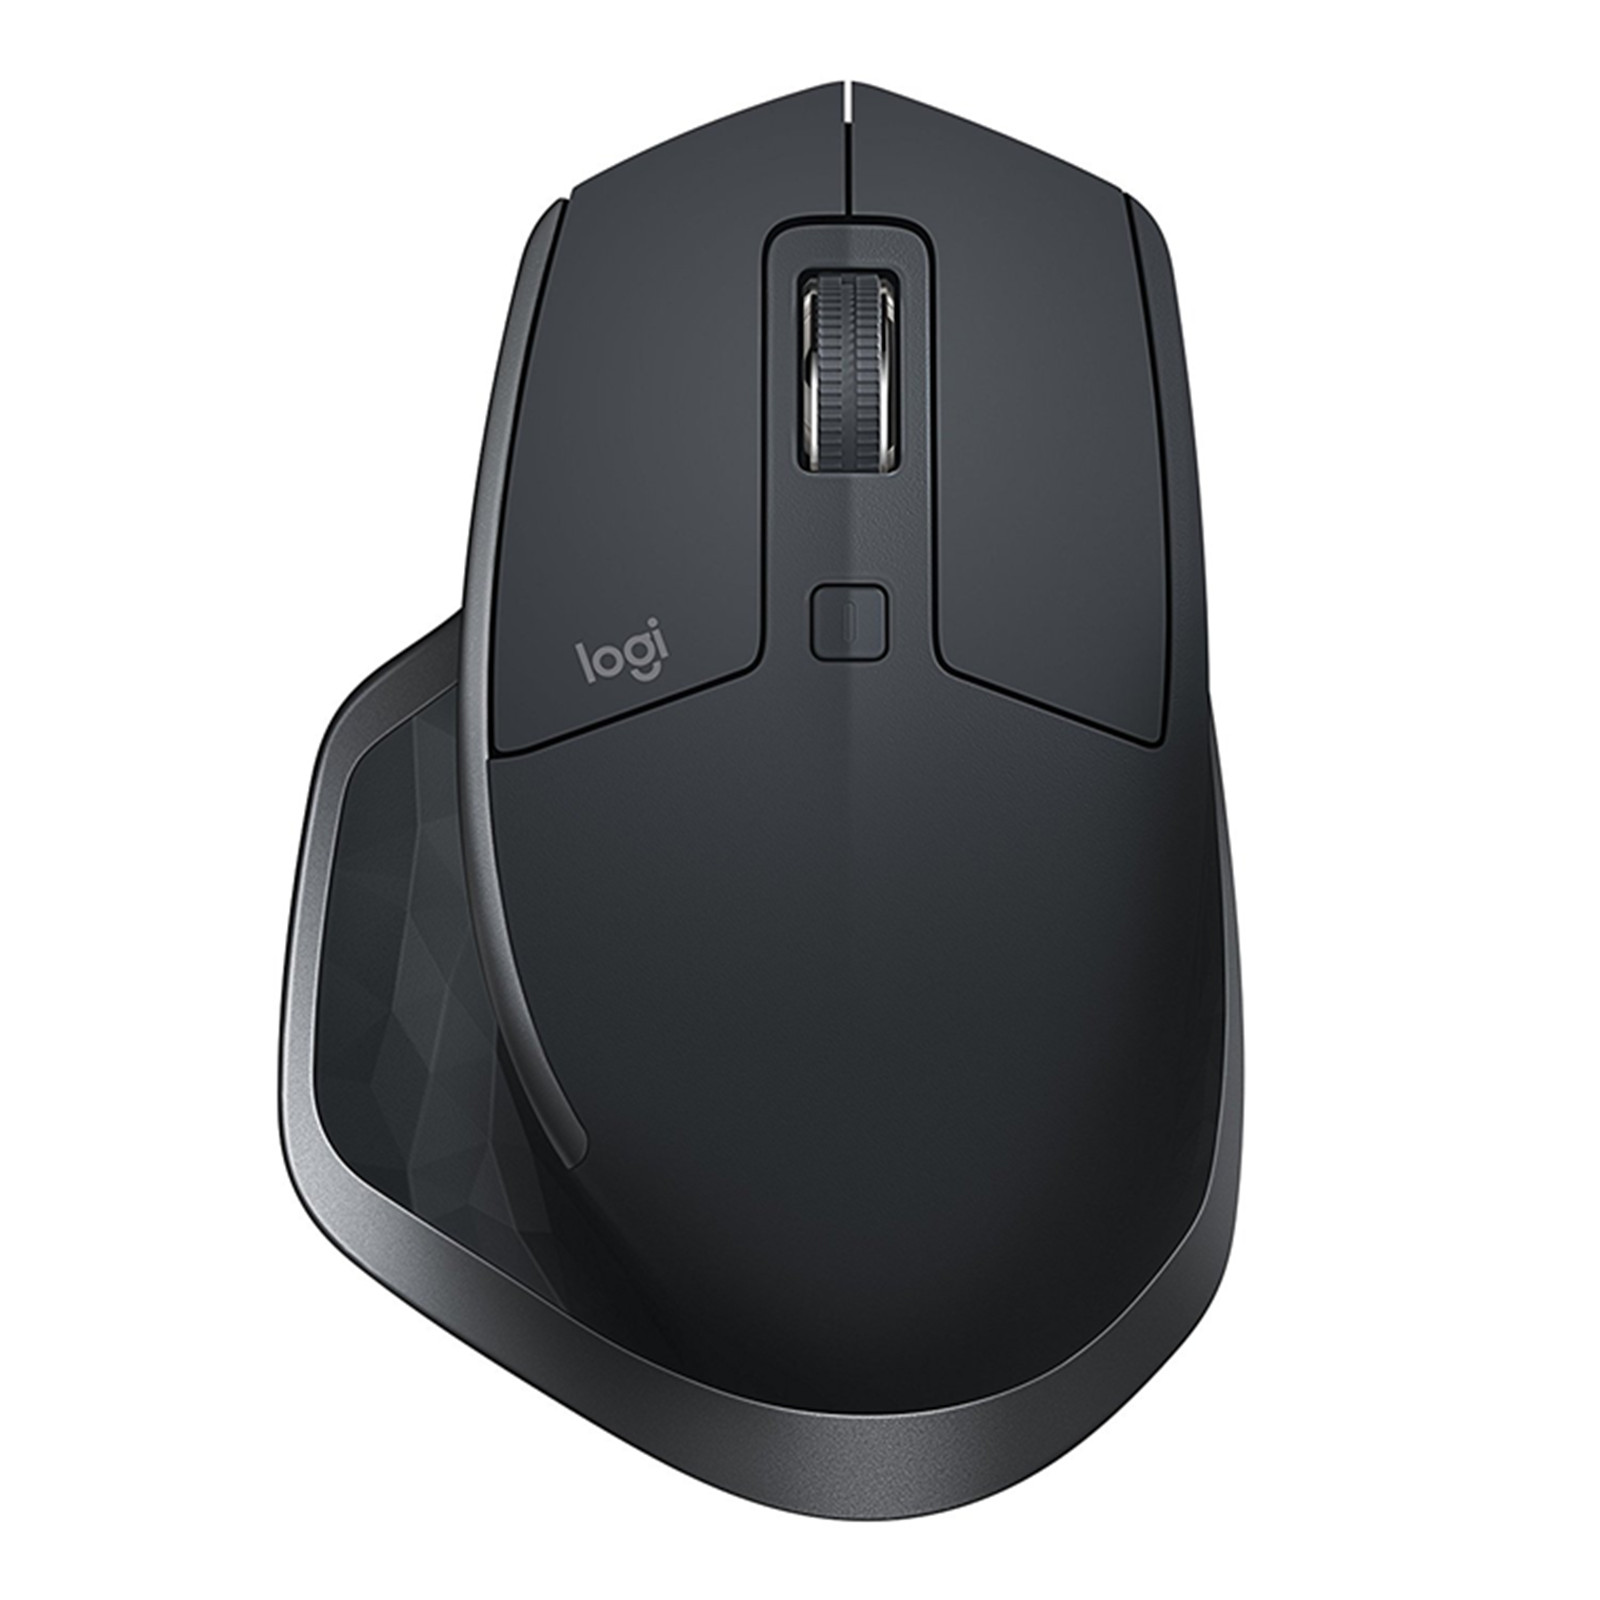 Buy The Logitech Mx Master 2s Bluetooth And Wireless Mouse R One Revolutionary Multi Computer Control